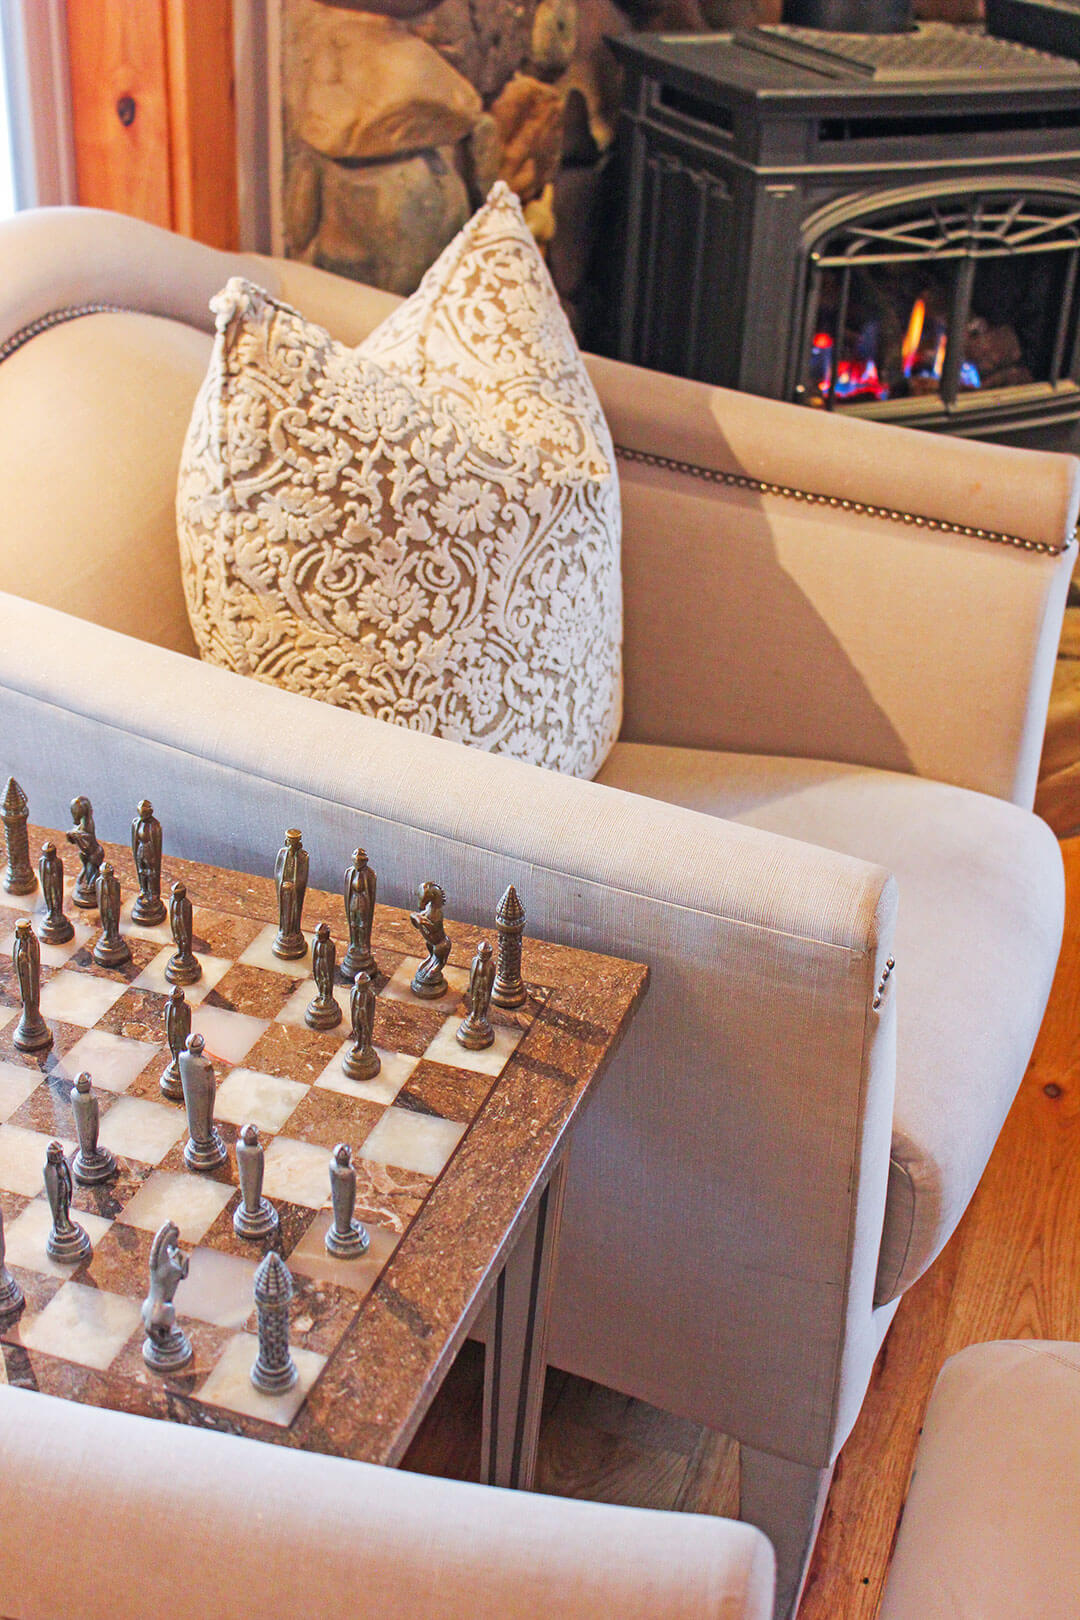 Lounge Chair, Fireplace and Chessboard Table